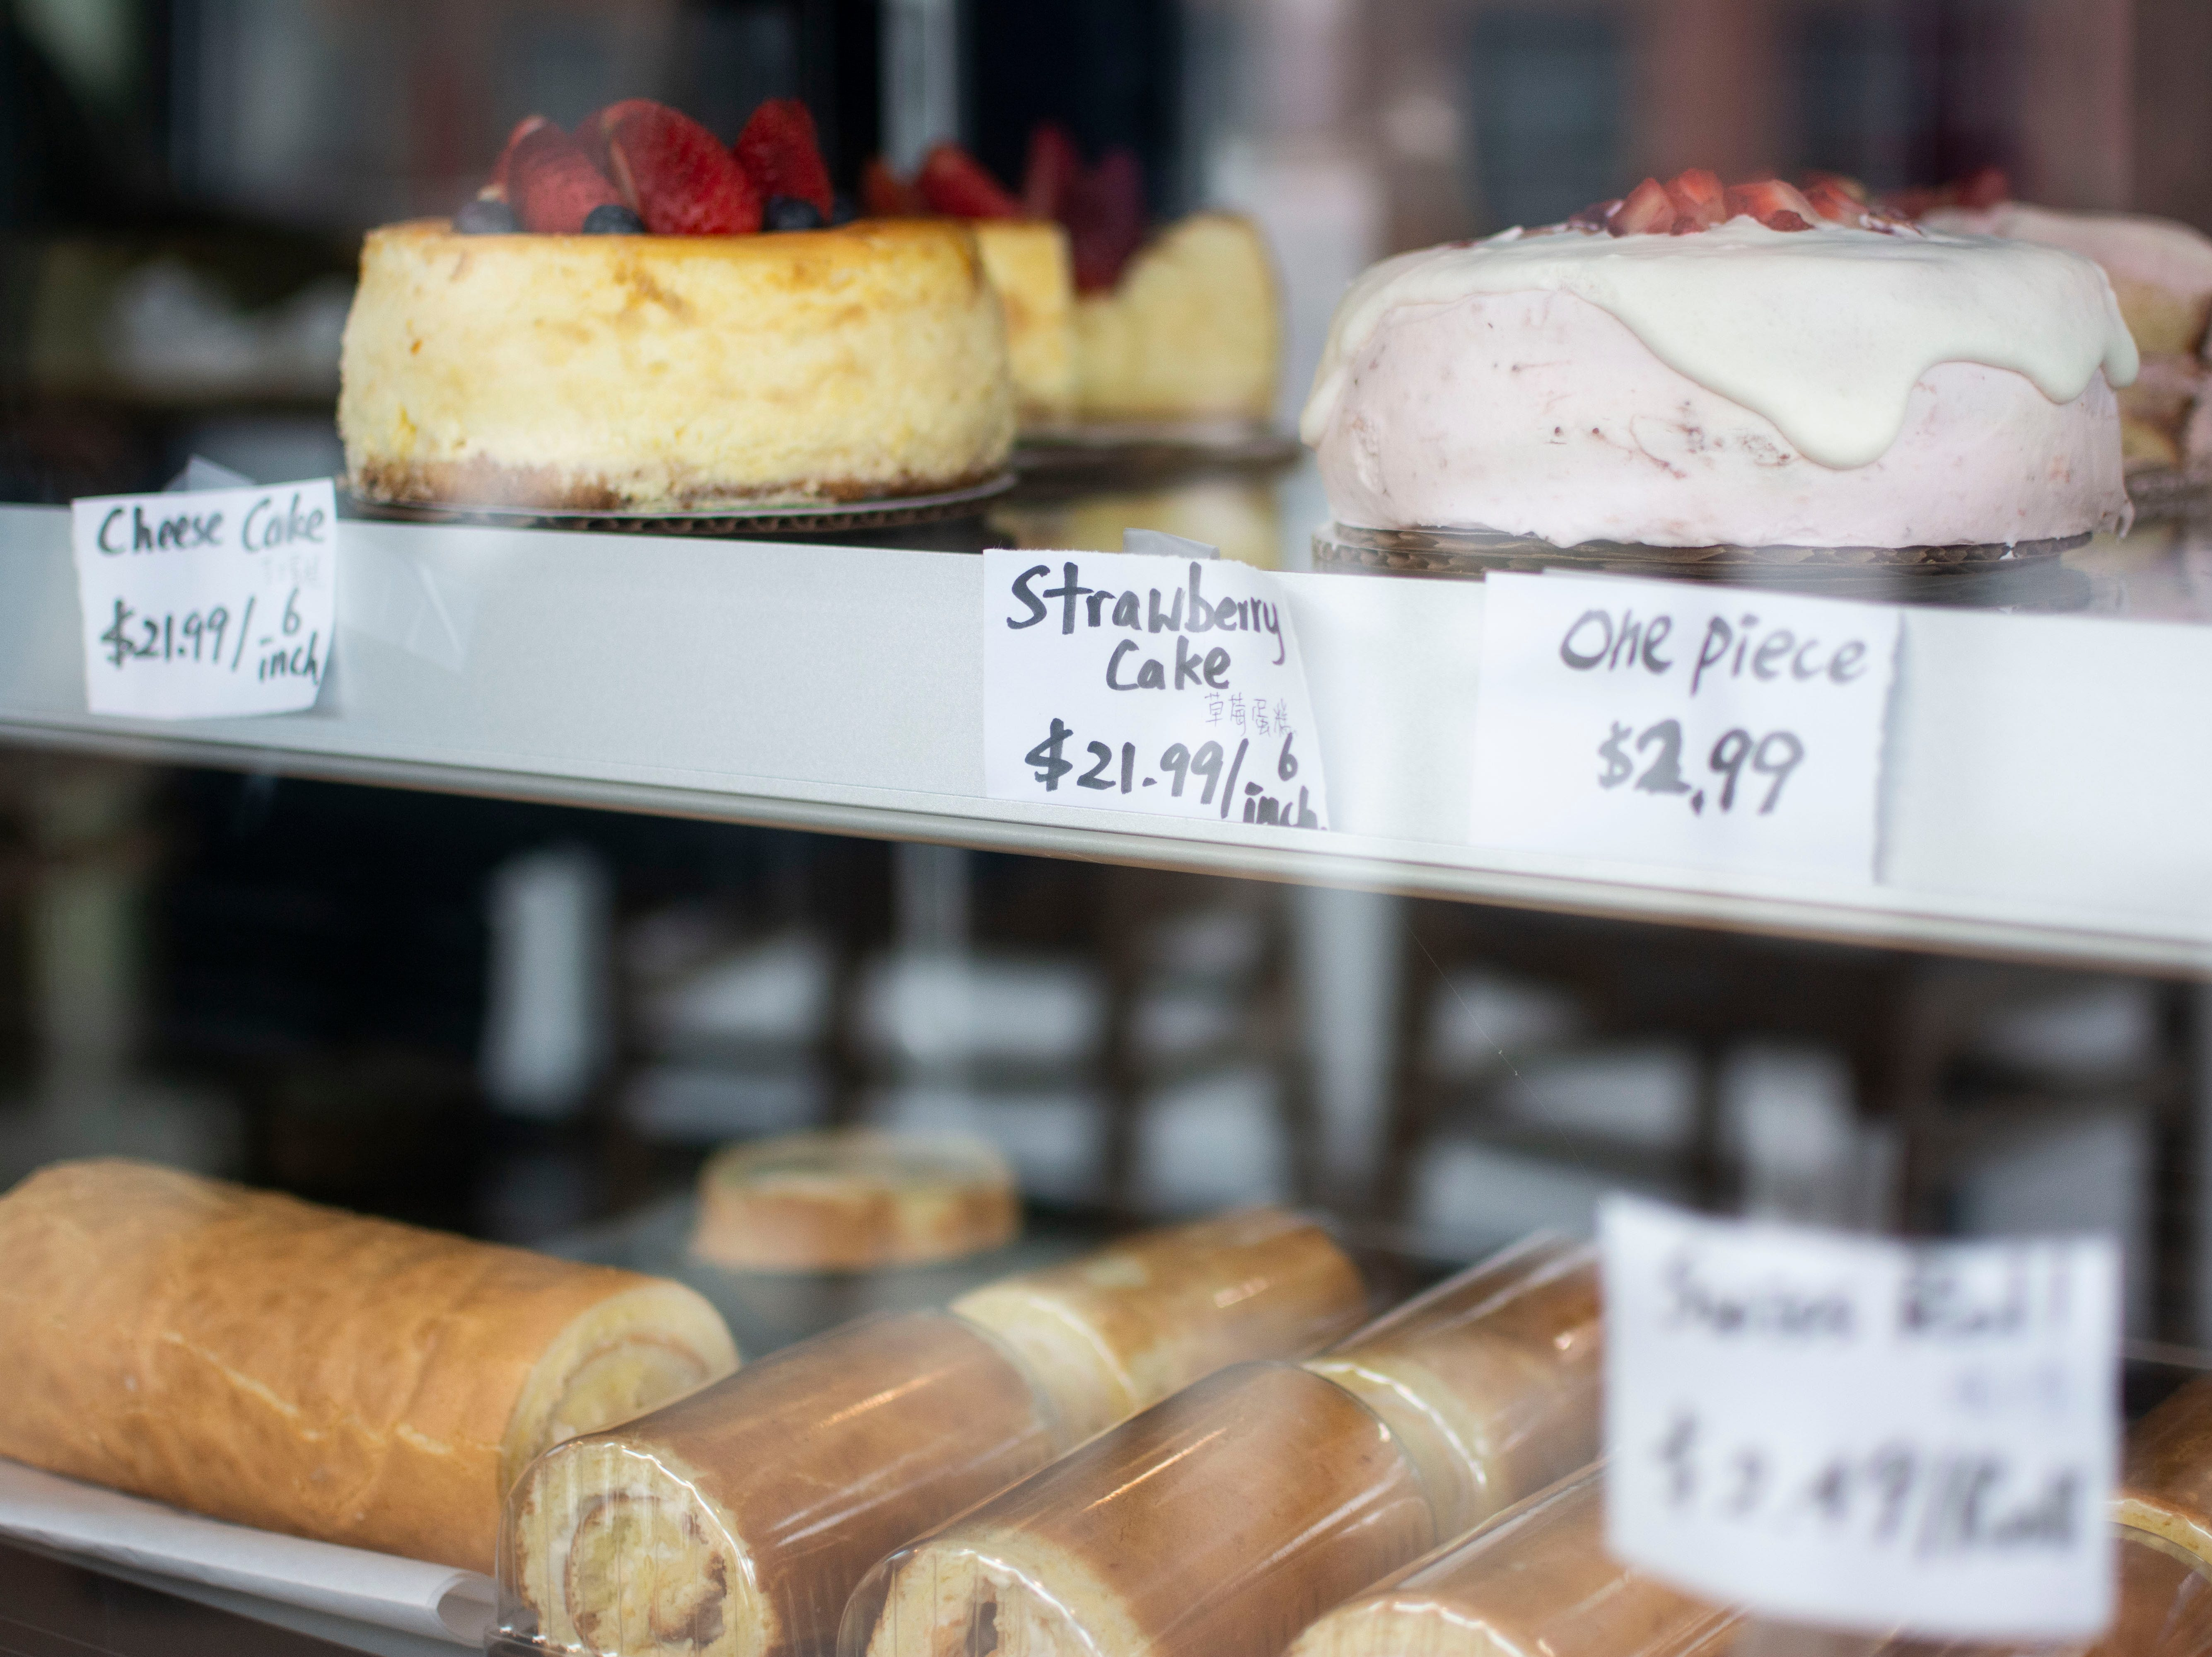 """The cakes at Morning Light bakery are """"Asian sweet, not American sweet,"""" said Ken Liu, the owner's son. They're made with fresh fruit and are less intense."""